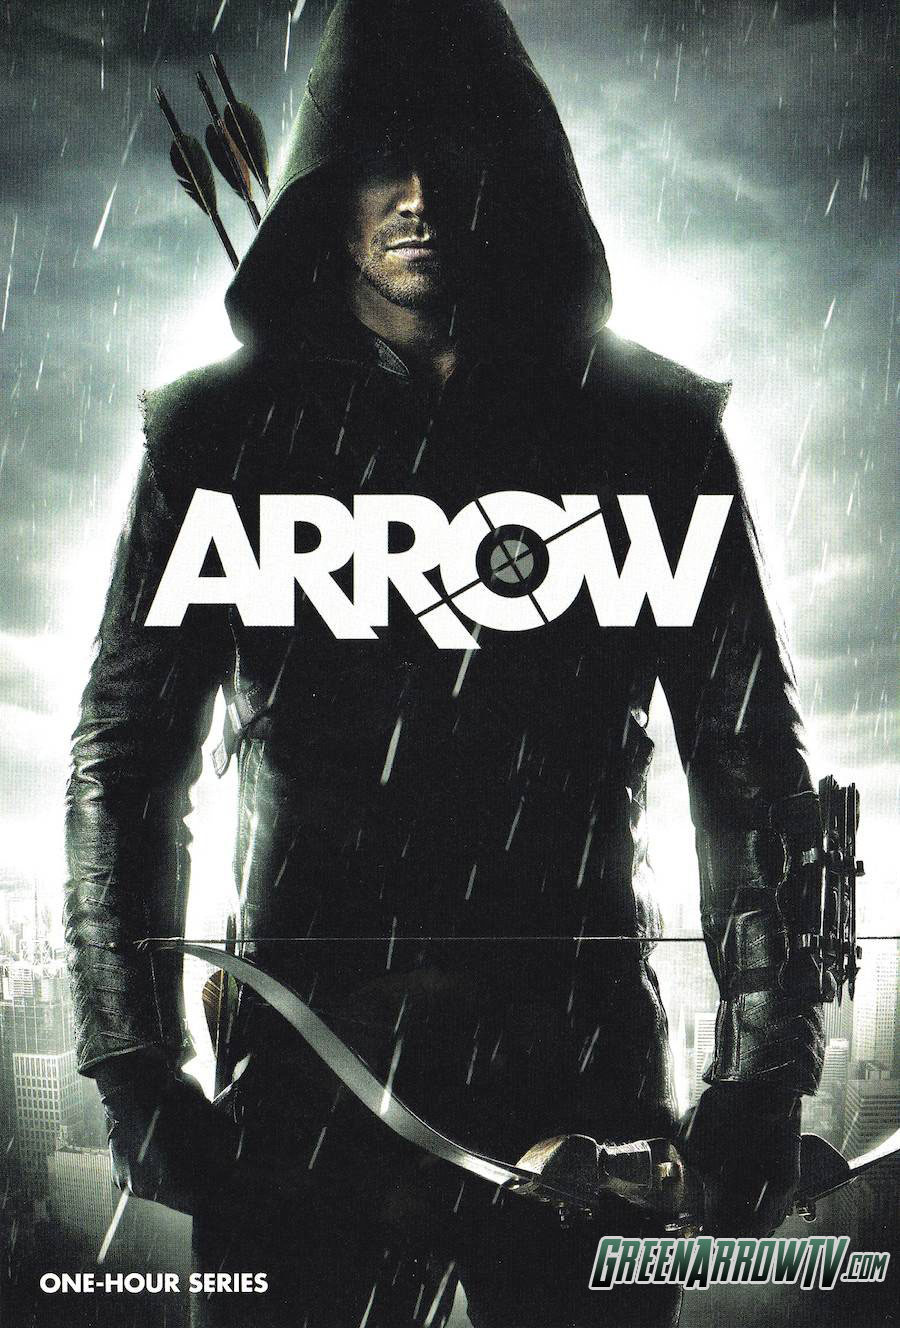 http://www.greenarrowtv.com/wp-content/gallery/international-poster/arrowinternational.jpg